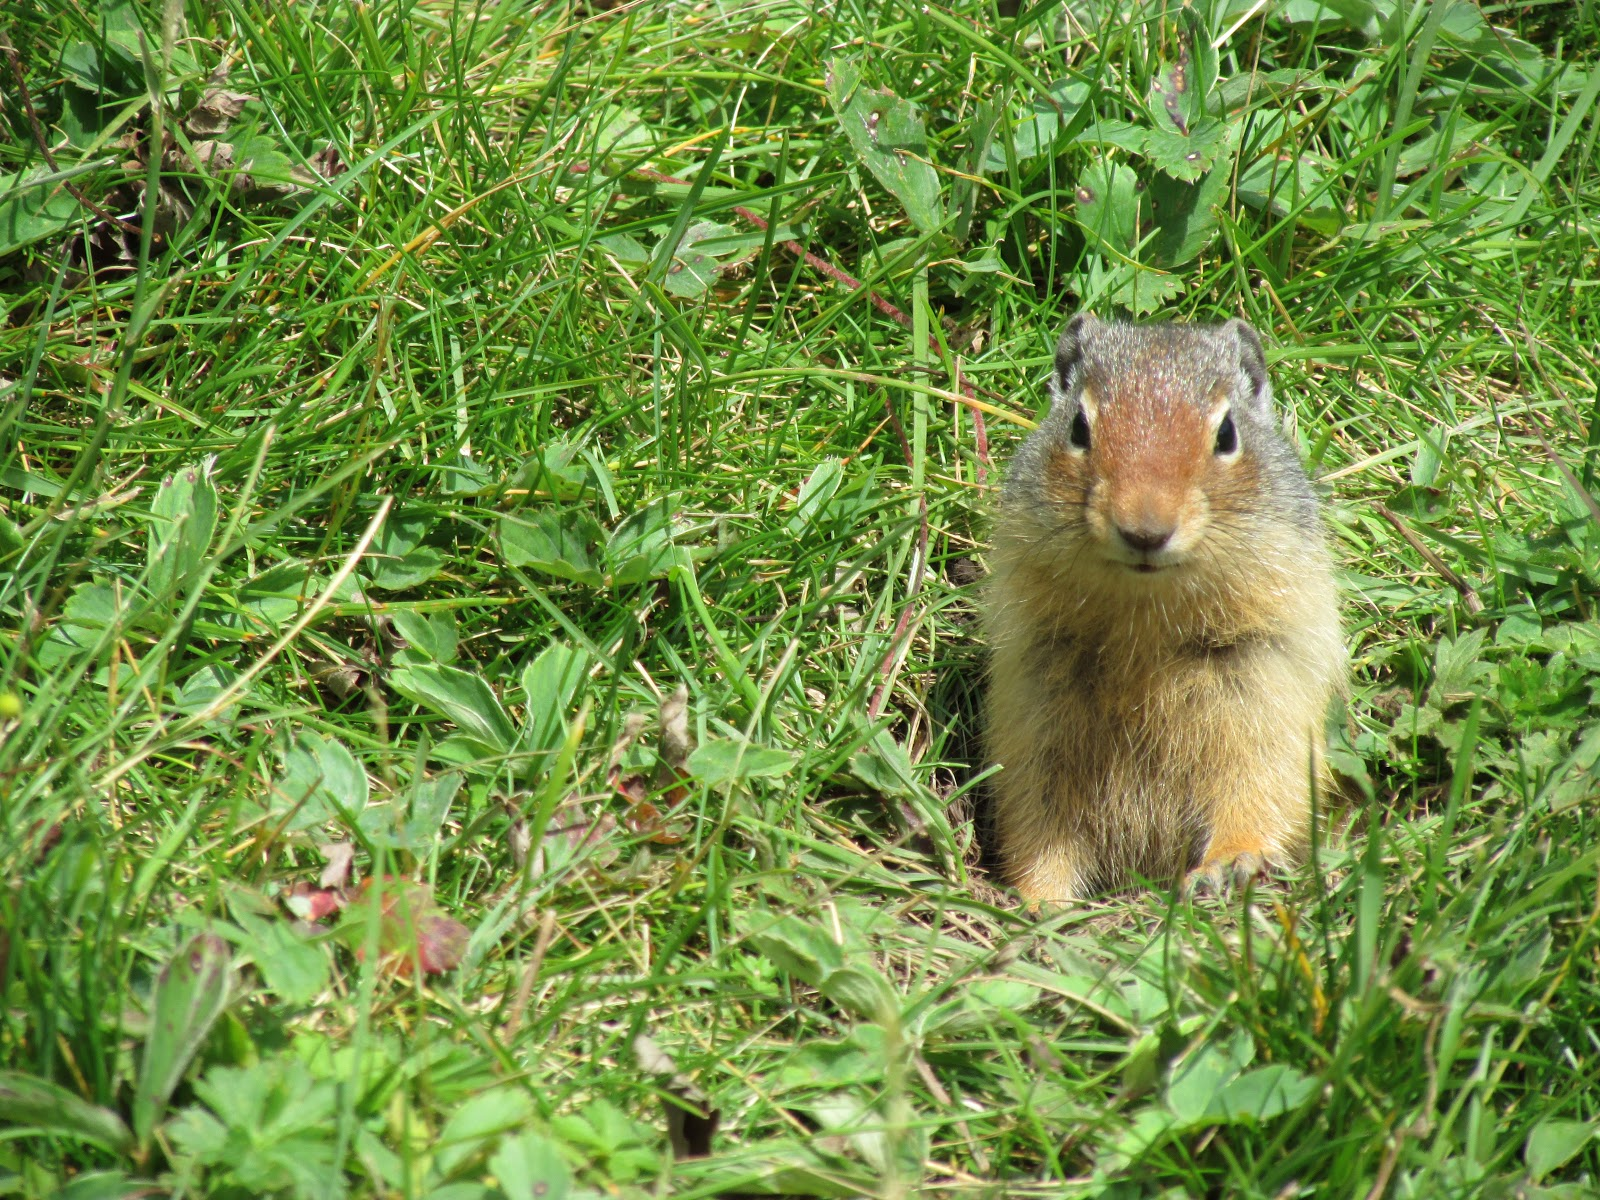 Little Ground Squirrel | Akinokiki